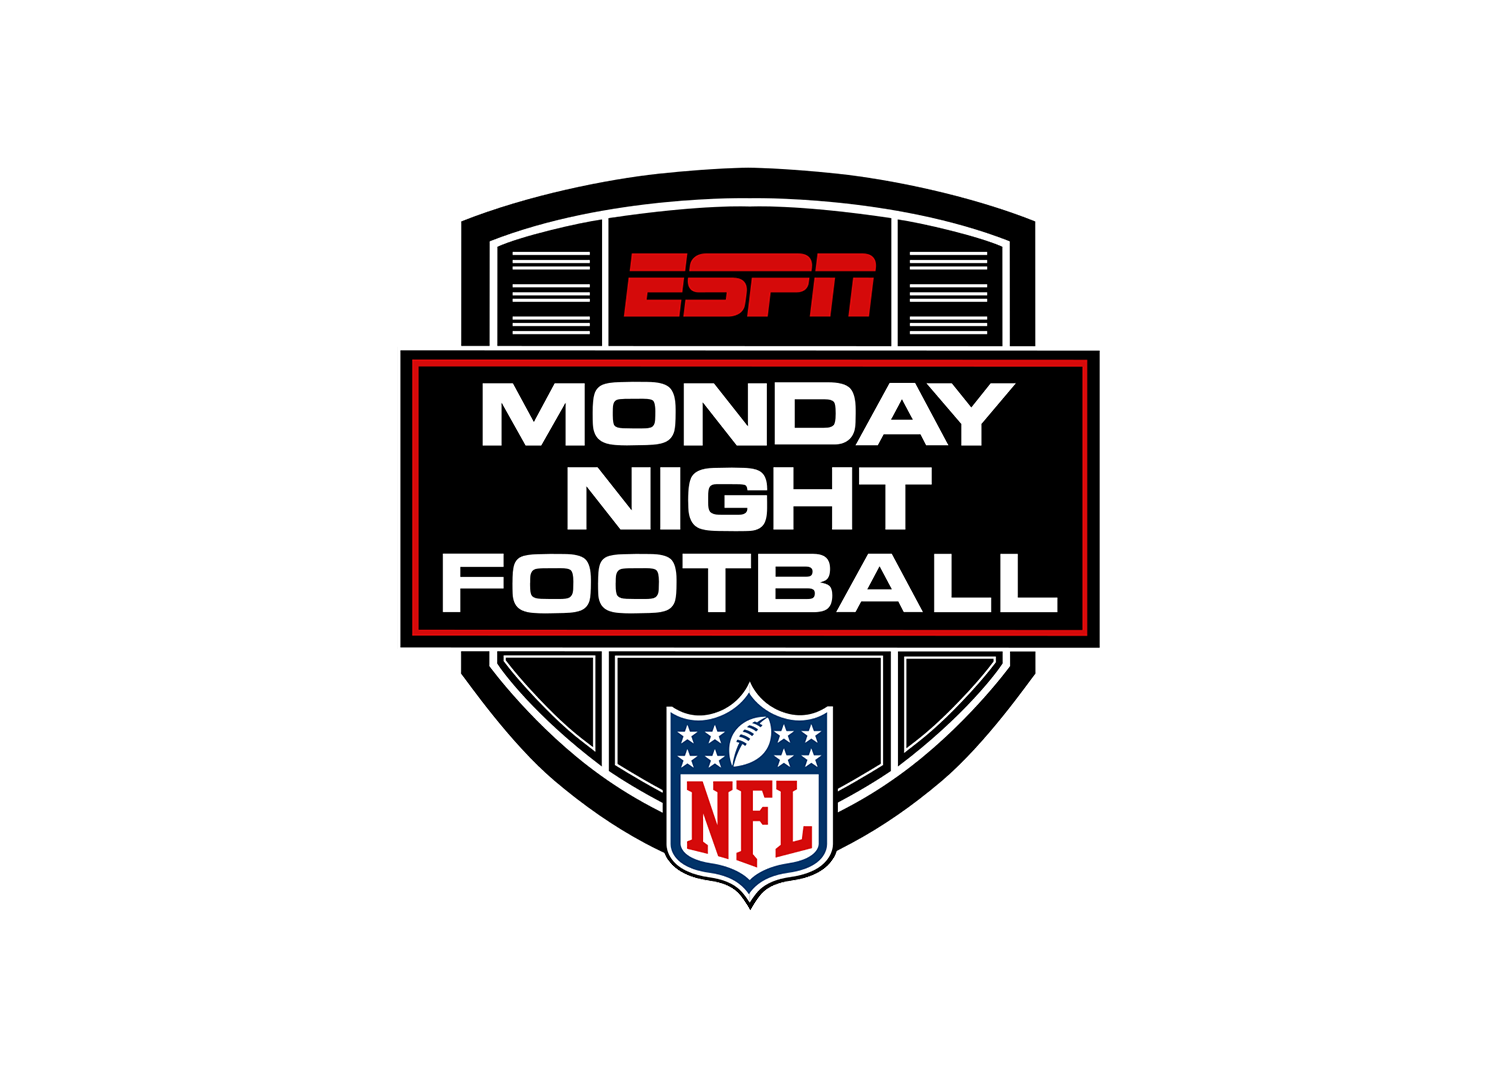 NFL Week 11 Finals: Yet Another Multi-Year Low For MNF - Sports